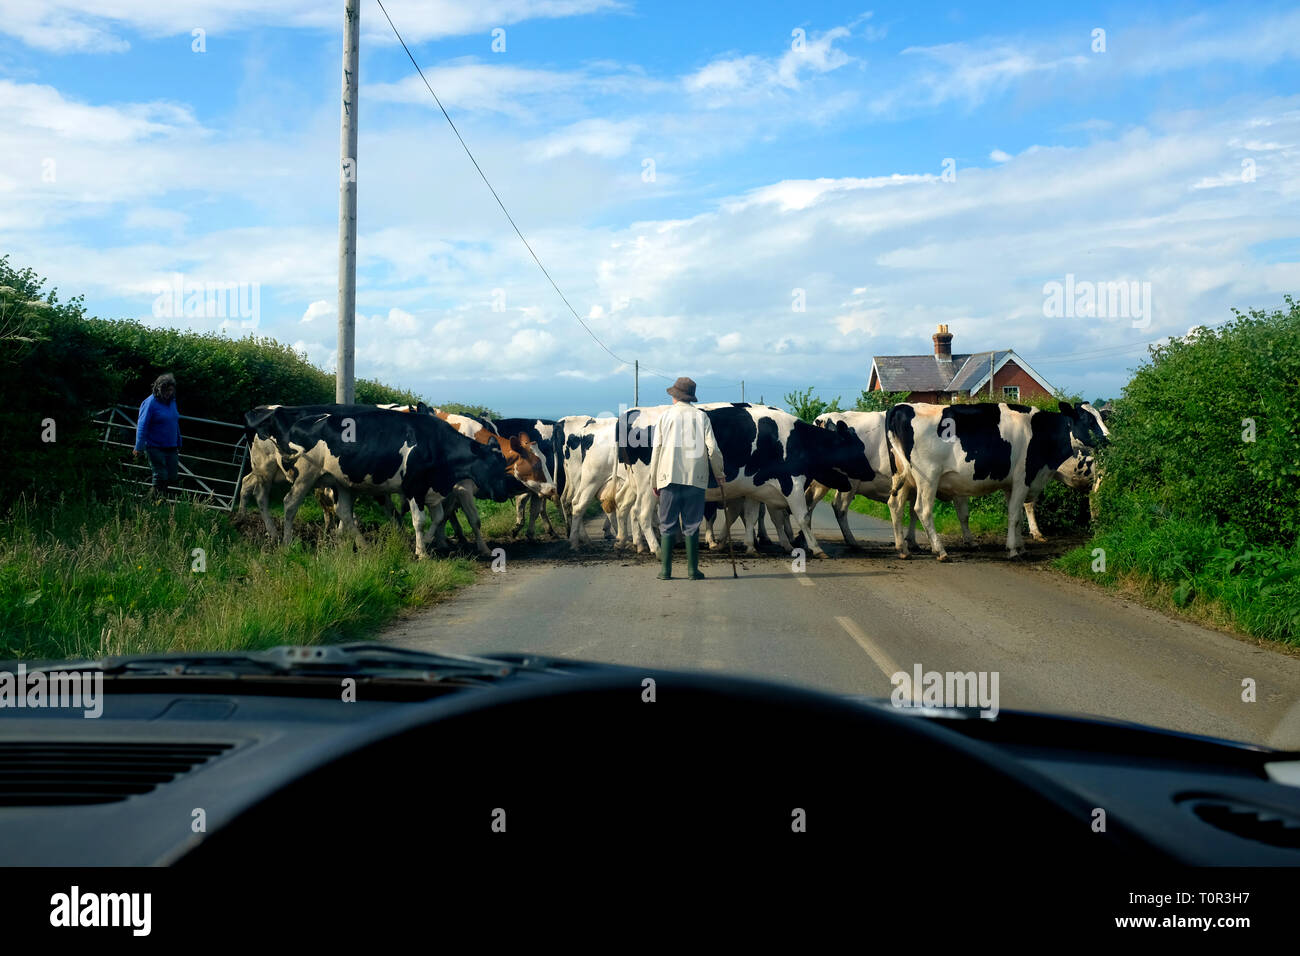 farmers,herding,dairy,cattle,across,road,to,farm,cows,cattle,Fresian,view,from,car,dashboard,Gurnard,Isle of Wight,England, UK, - Stock Image